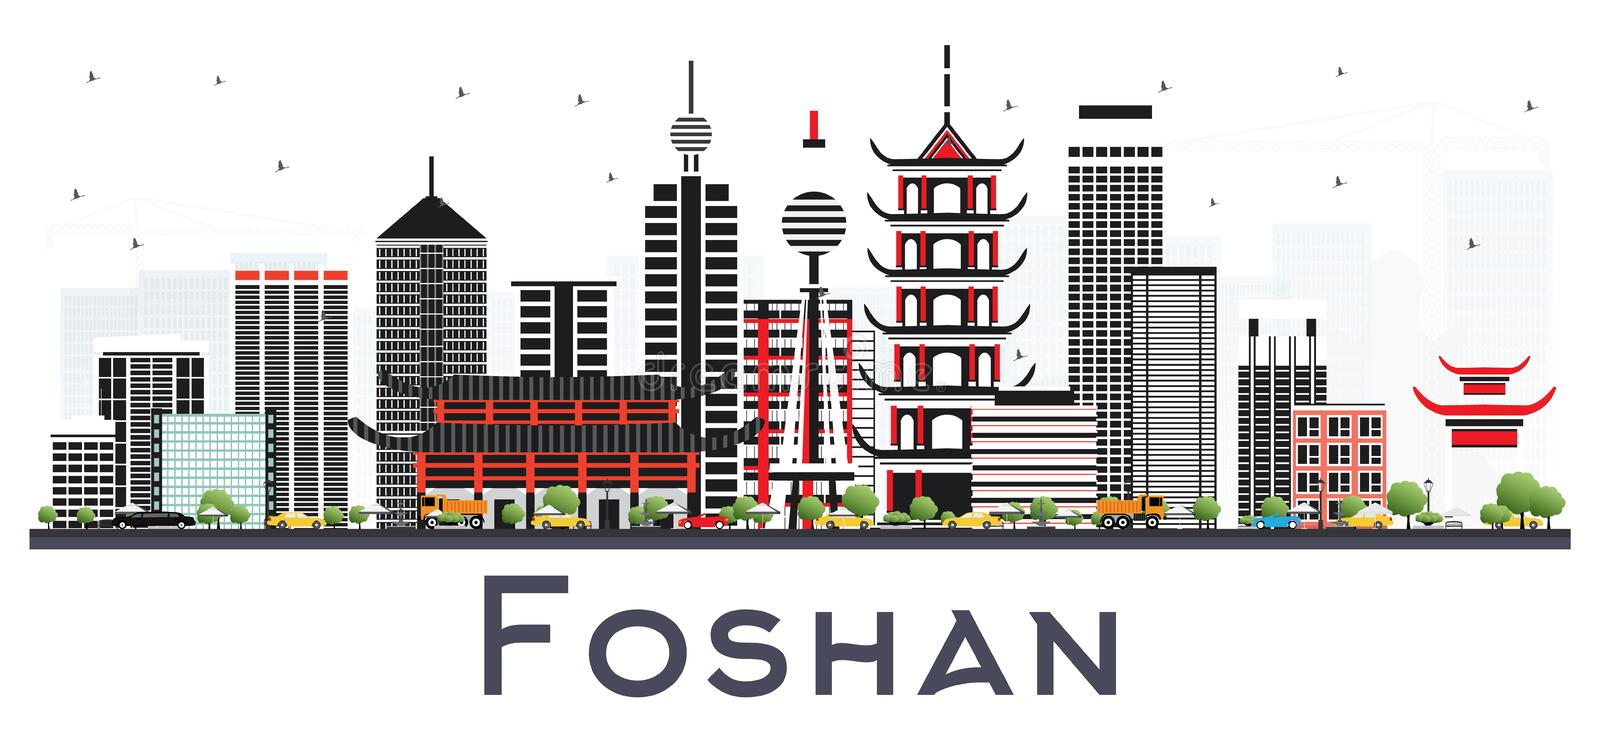 Foshan China City Skyline with Gray Buildings Isolated on White. Vector Illustration. Business Travel and Tourism Concept with Modern Architecture. Foshan royalty free illustration